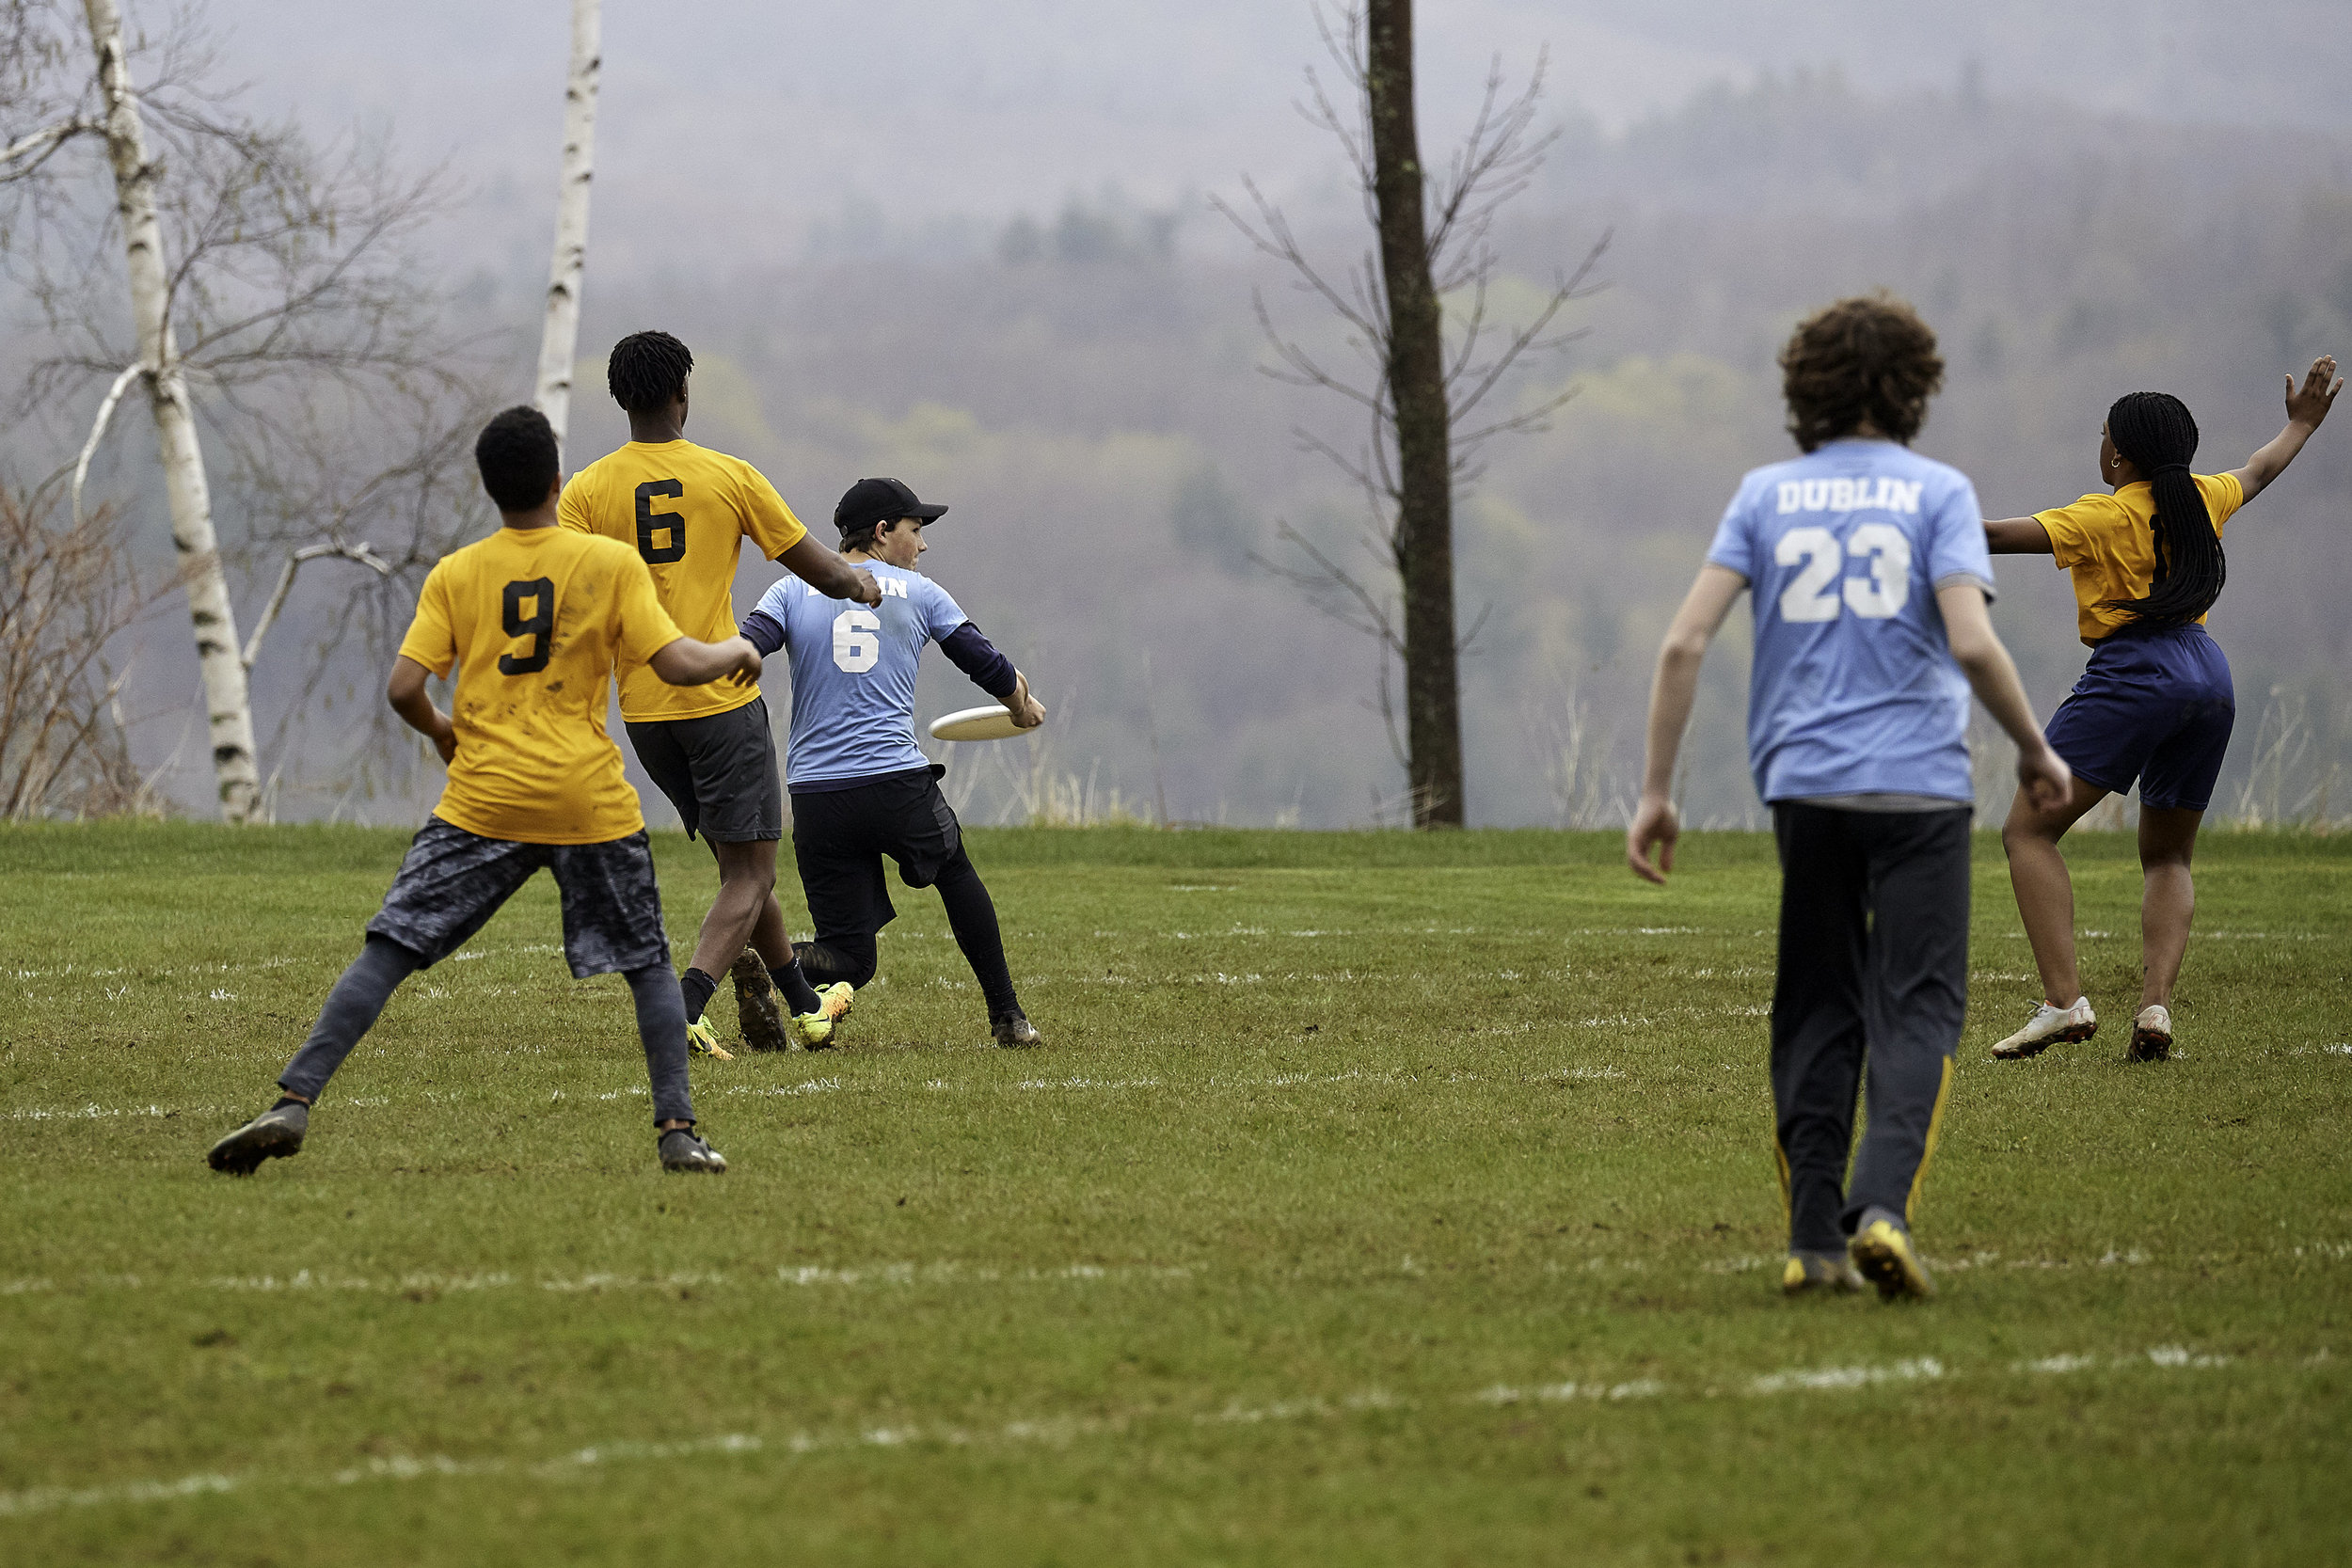 Ultimate Frisbee vs. Eagle Hill School - May 3, 2019 - 188627.jpg